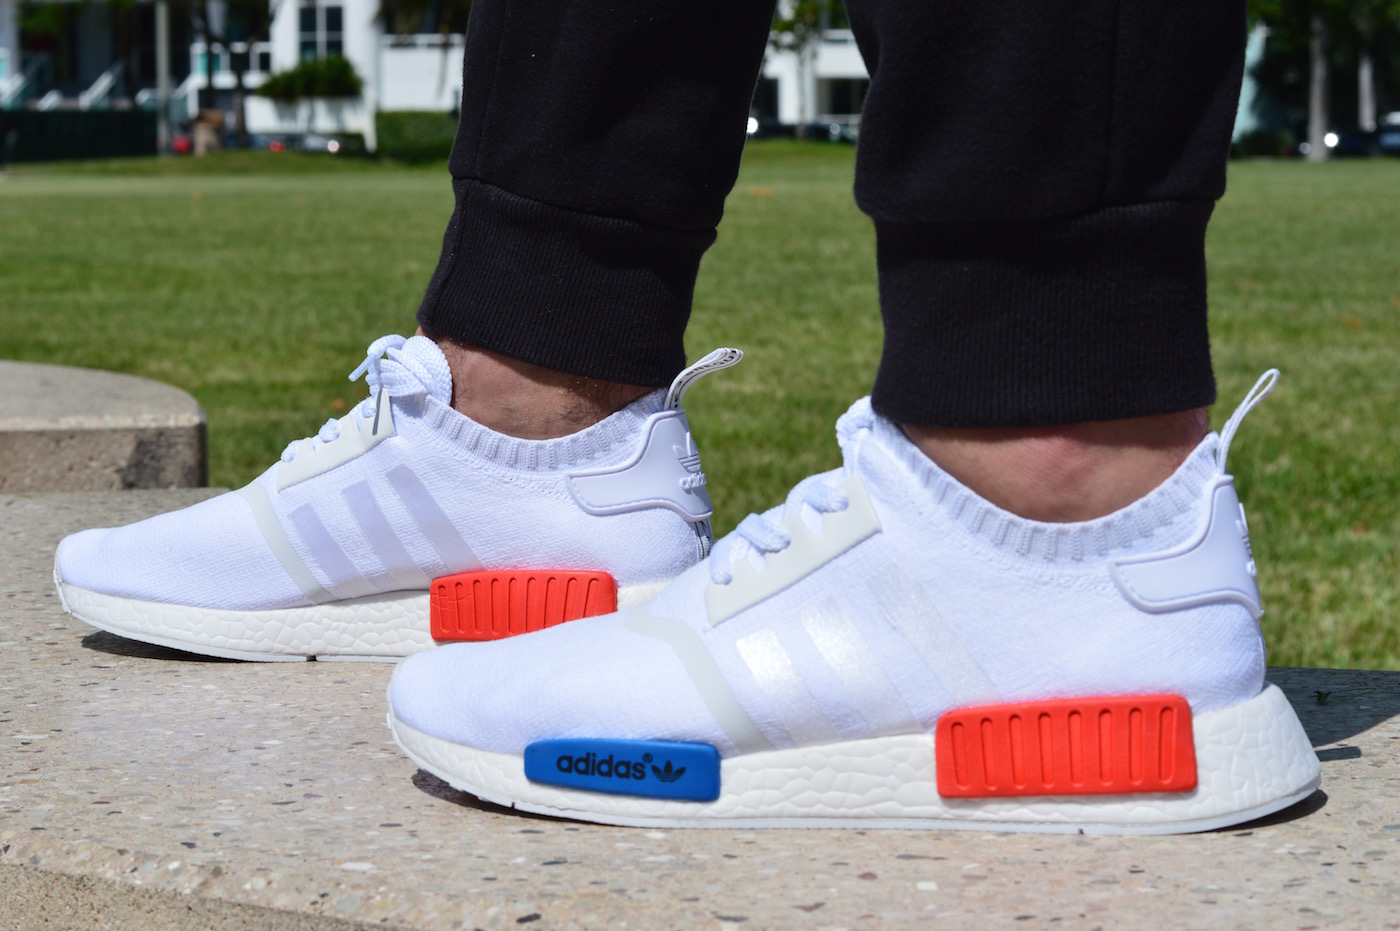 adidas NMD R1 Primeknit On Feet 2 Feet Side View White Red Blue